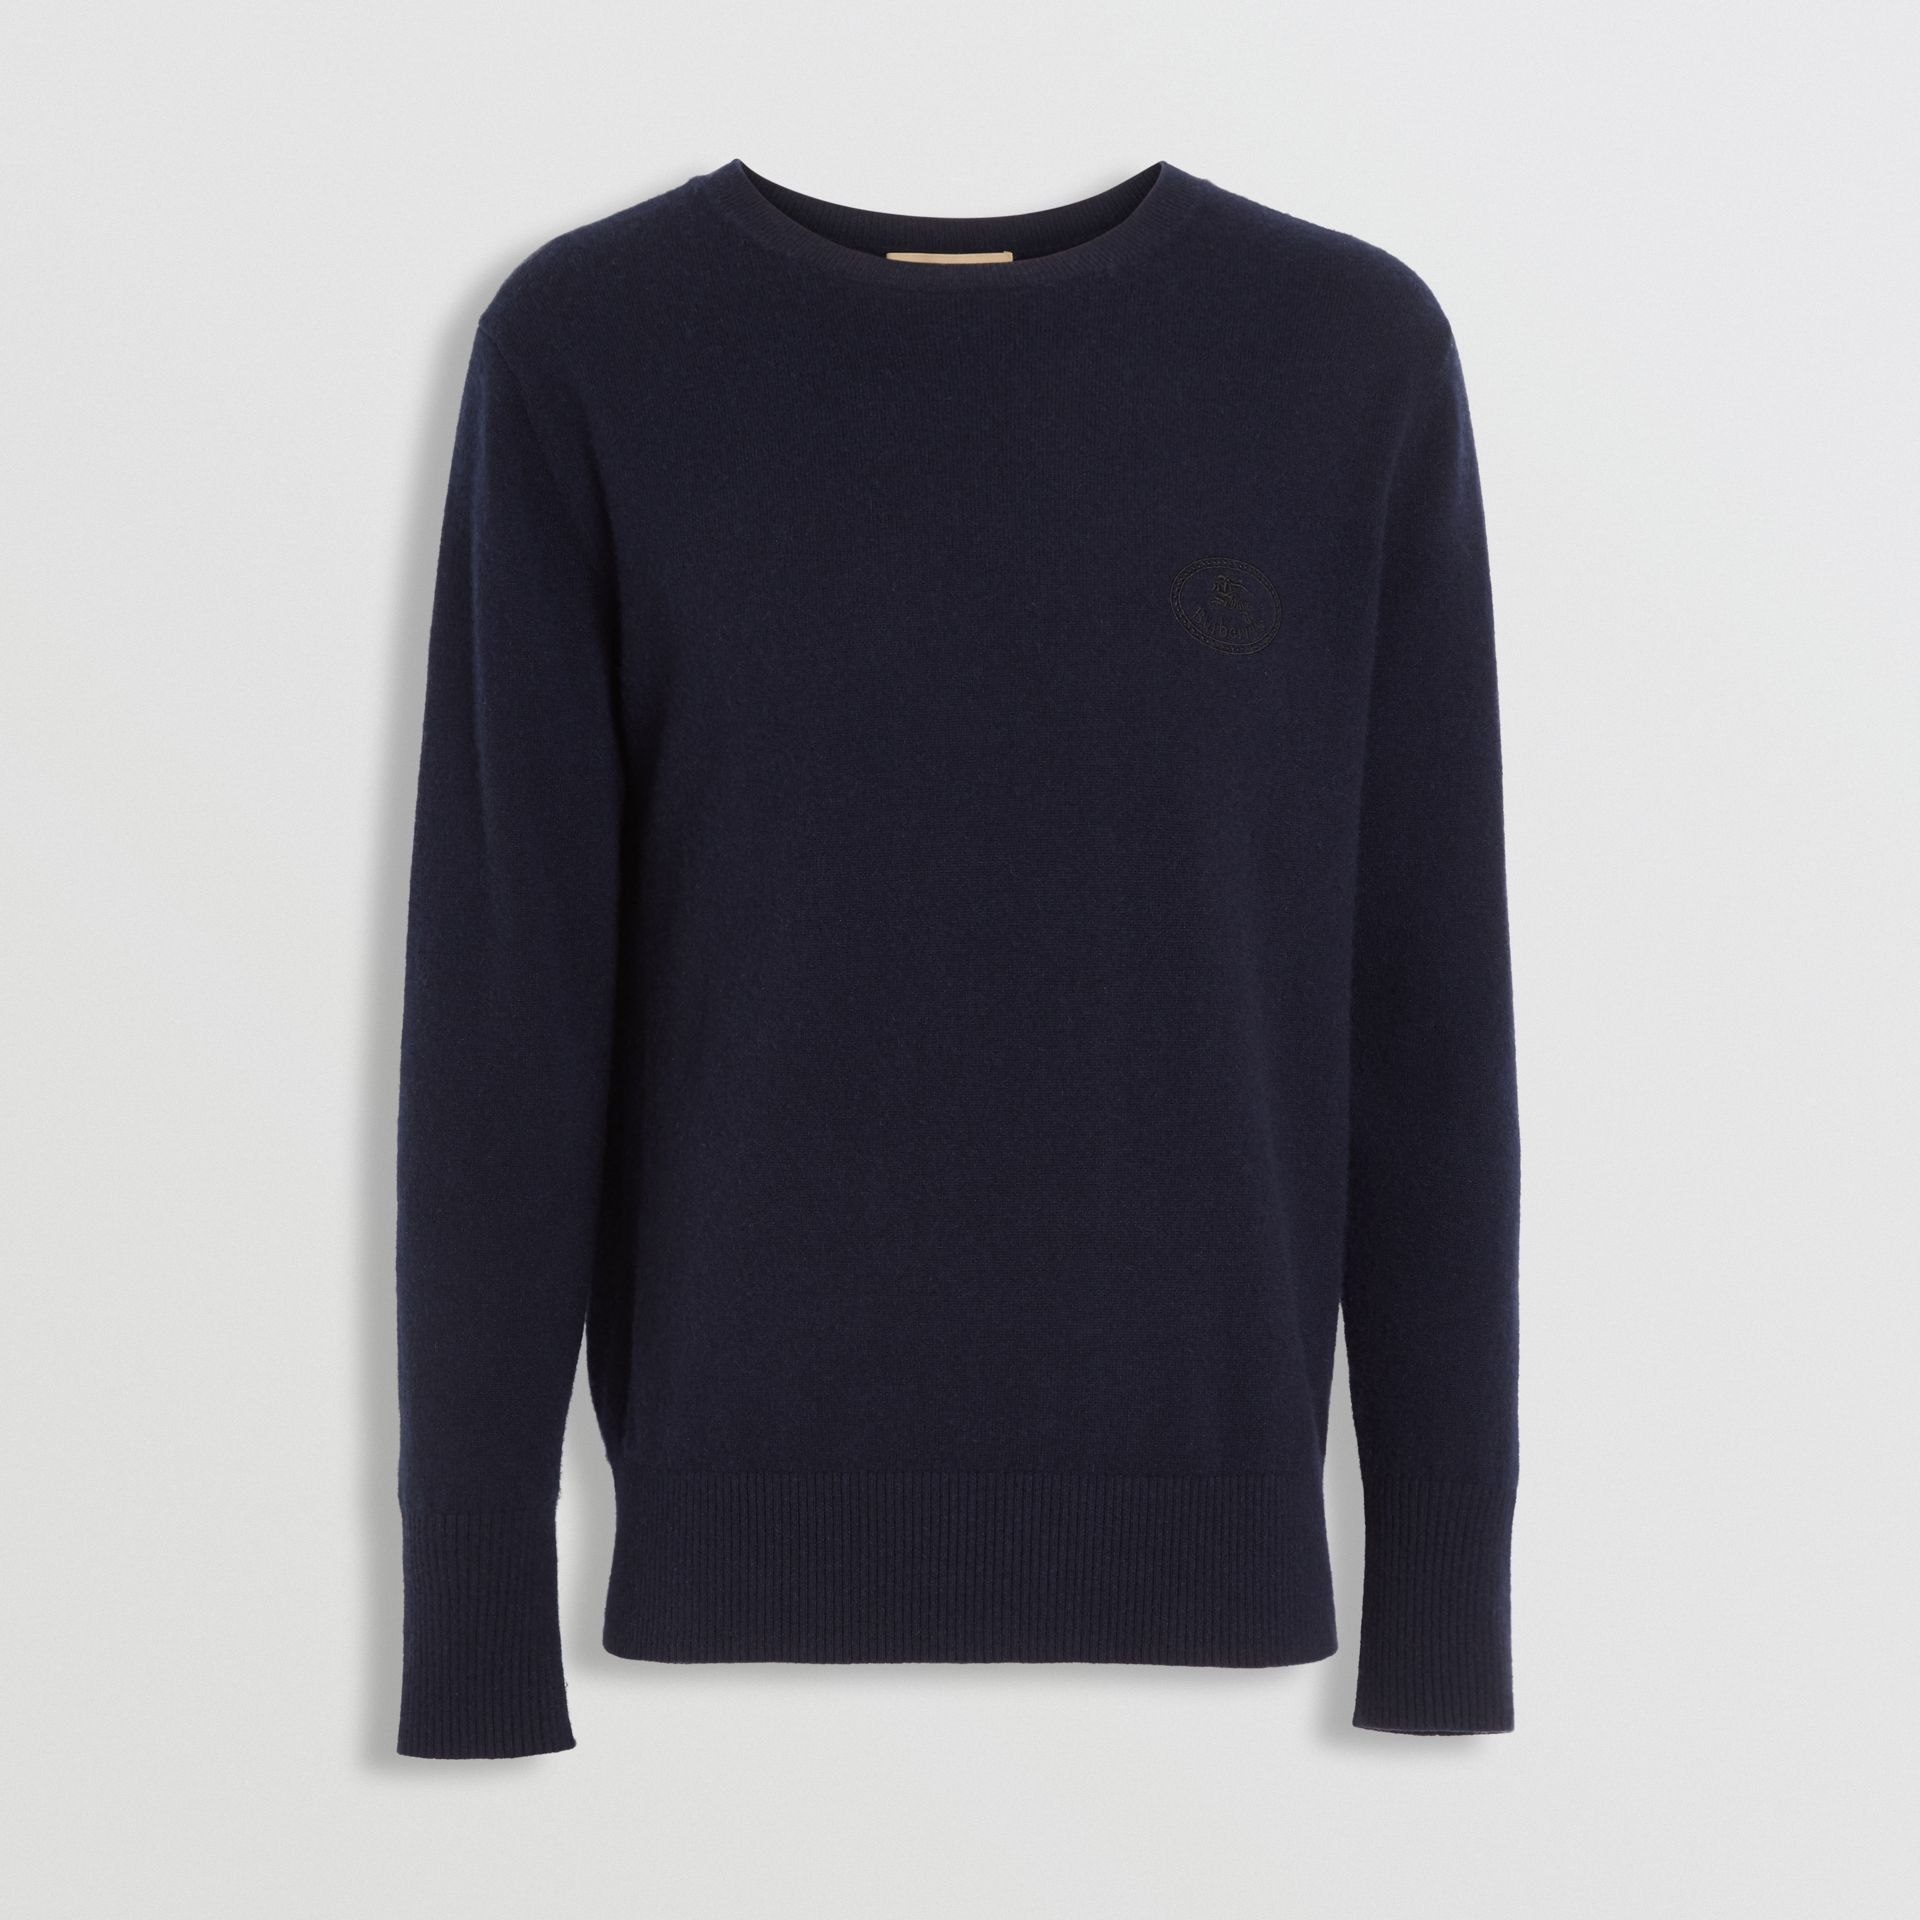 Embroidered Archive Logo Cashmere Sweater in Navy - Men | Burberry - gallery image 3